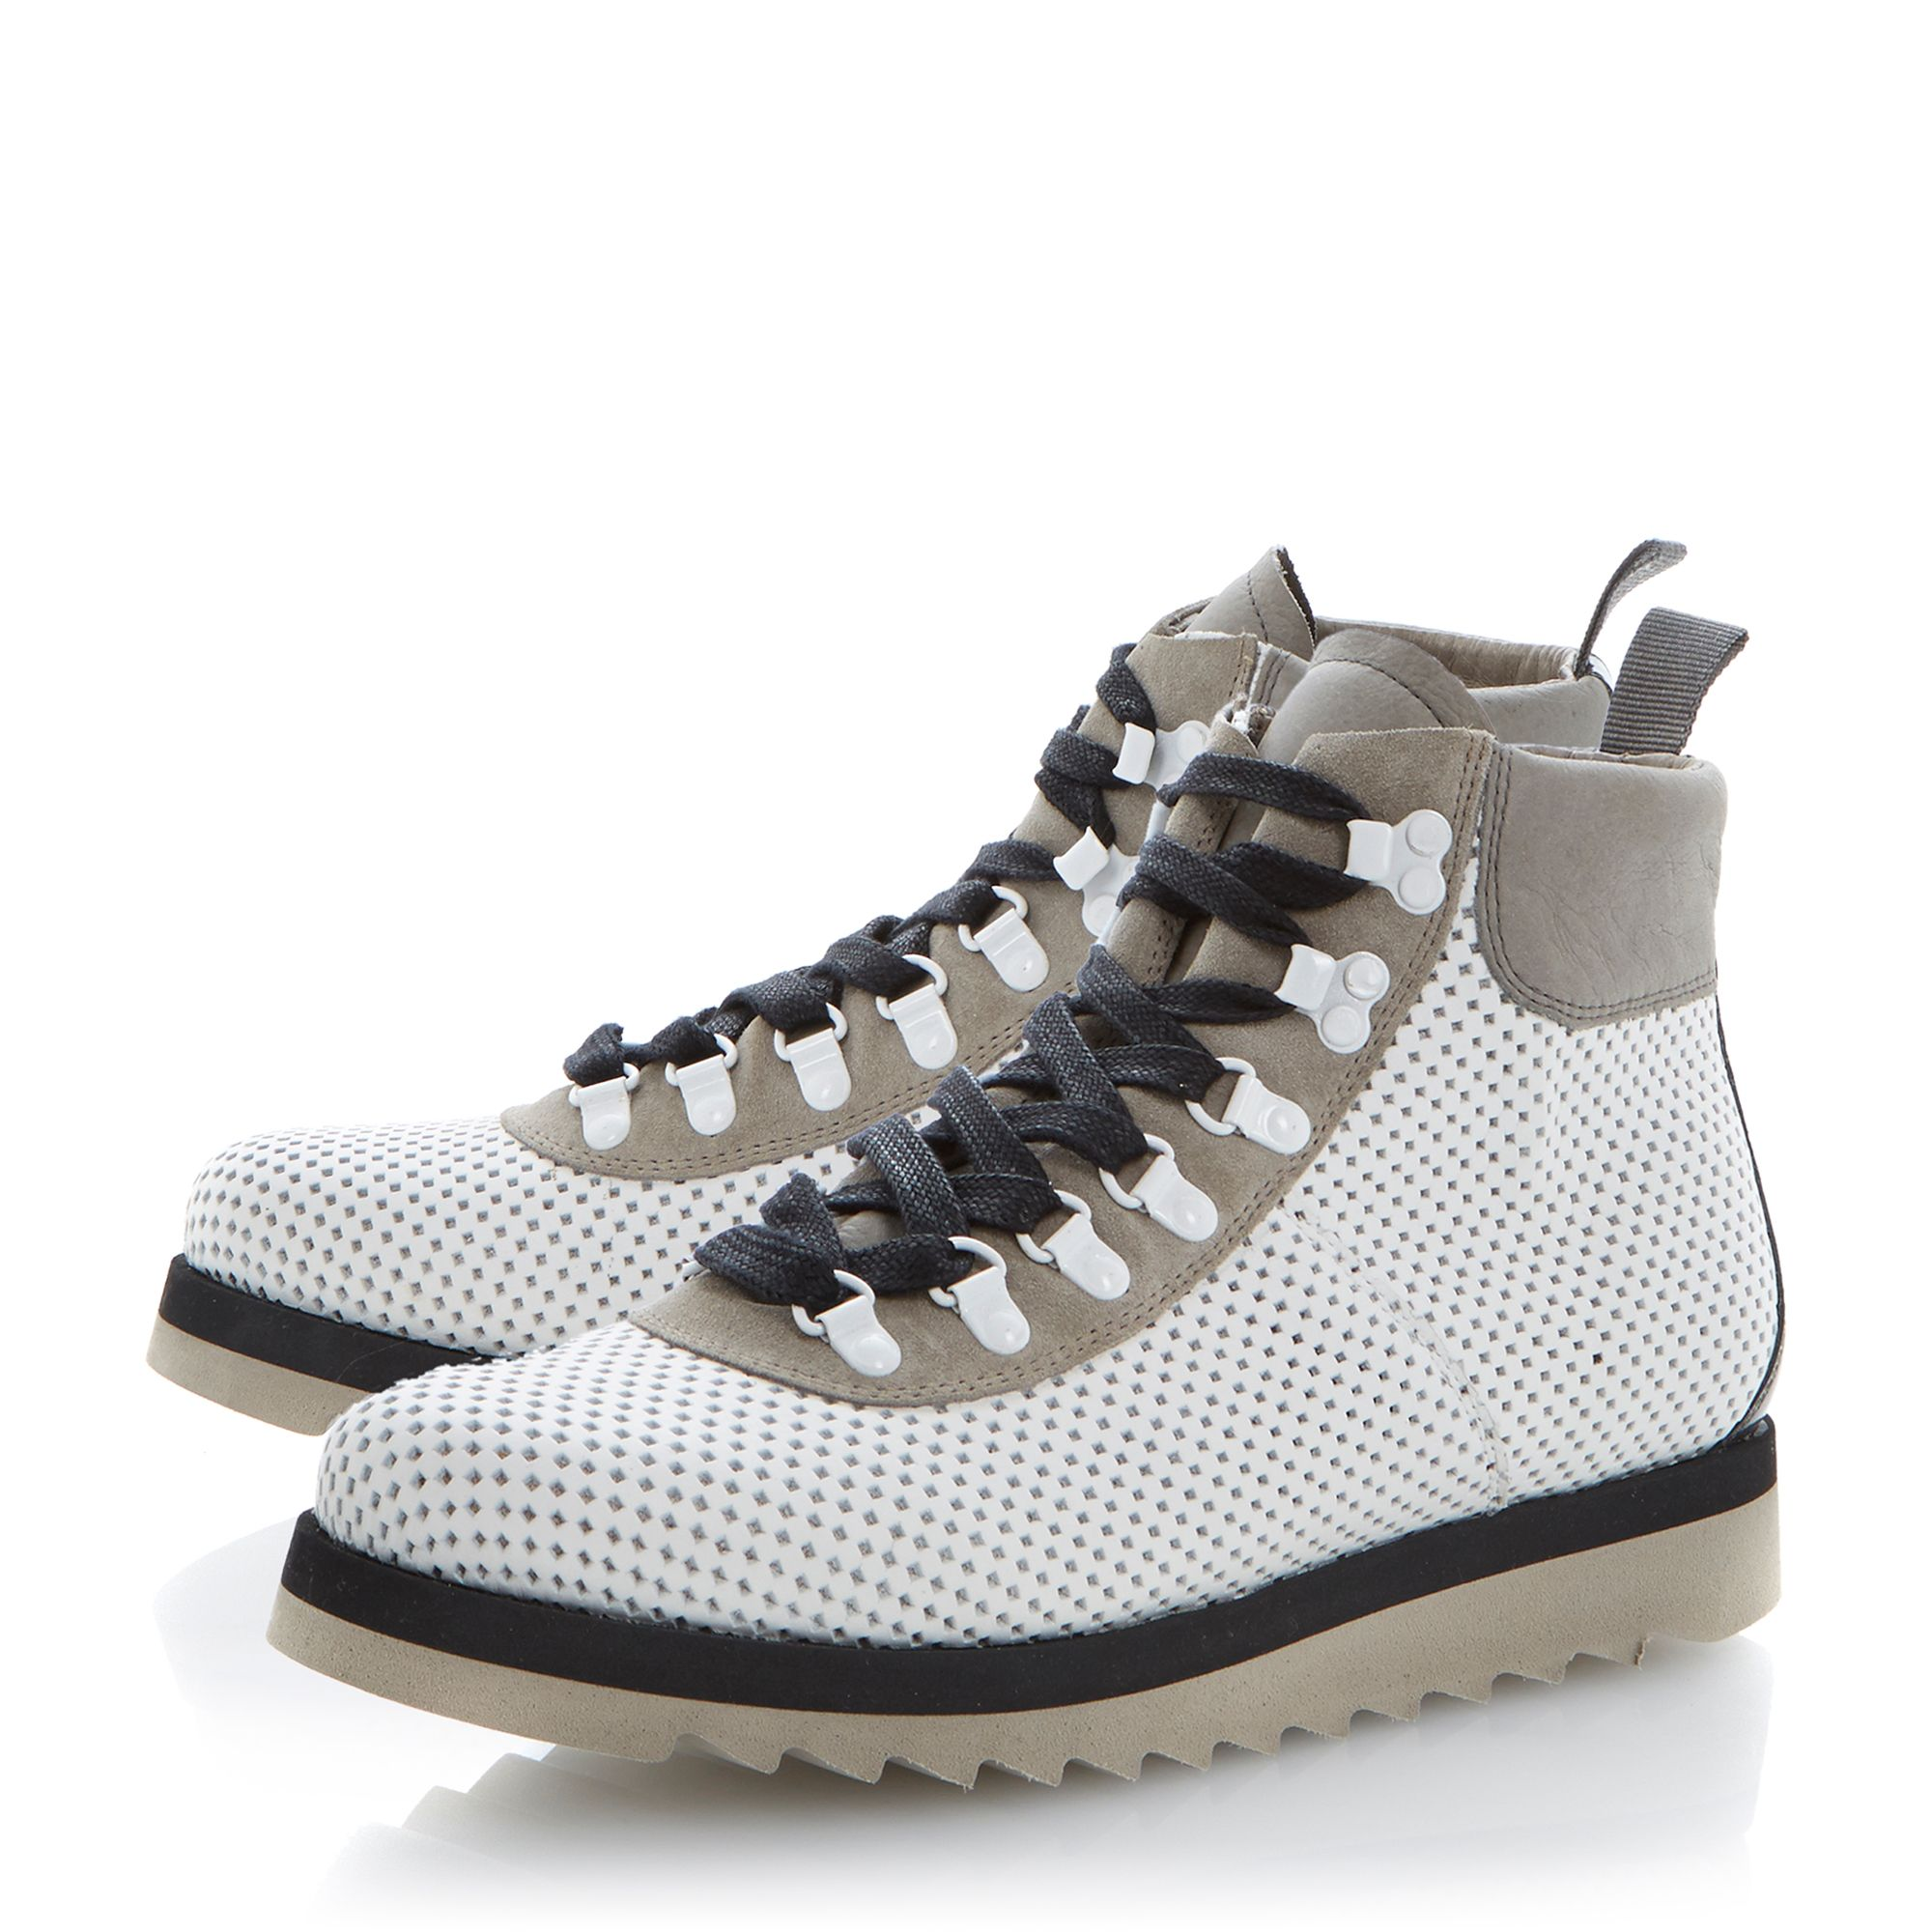 Sefton lace up cs hiker boots